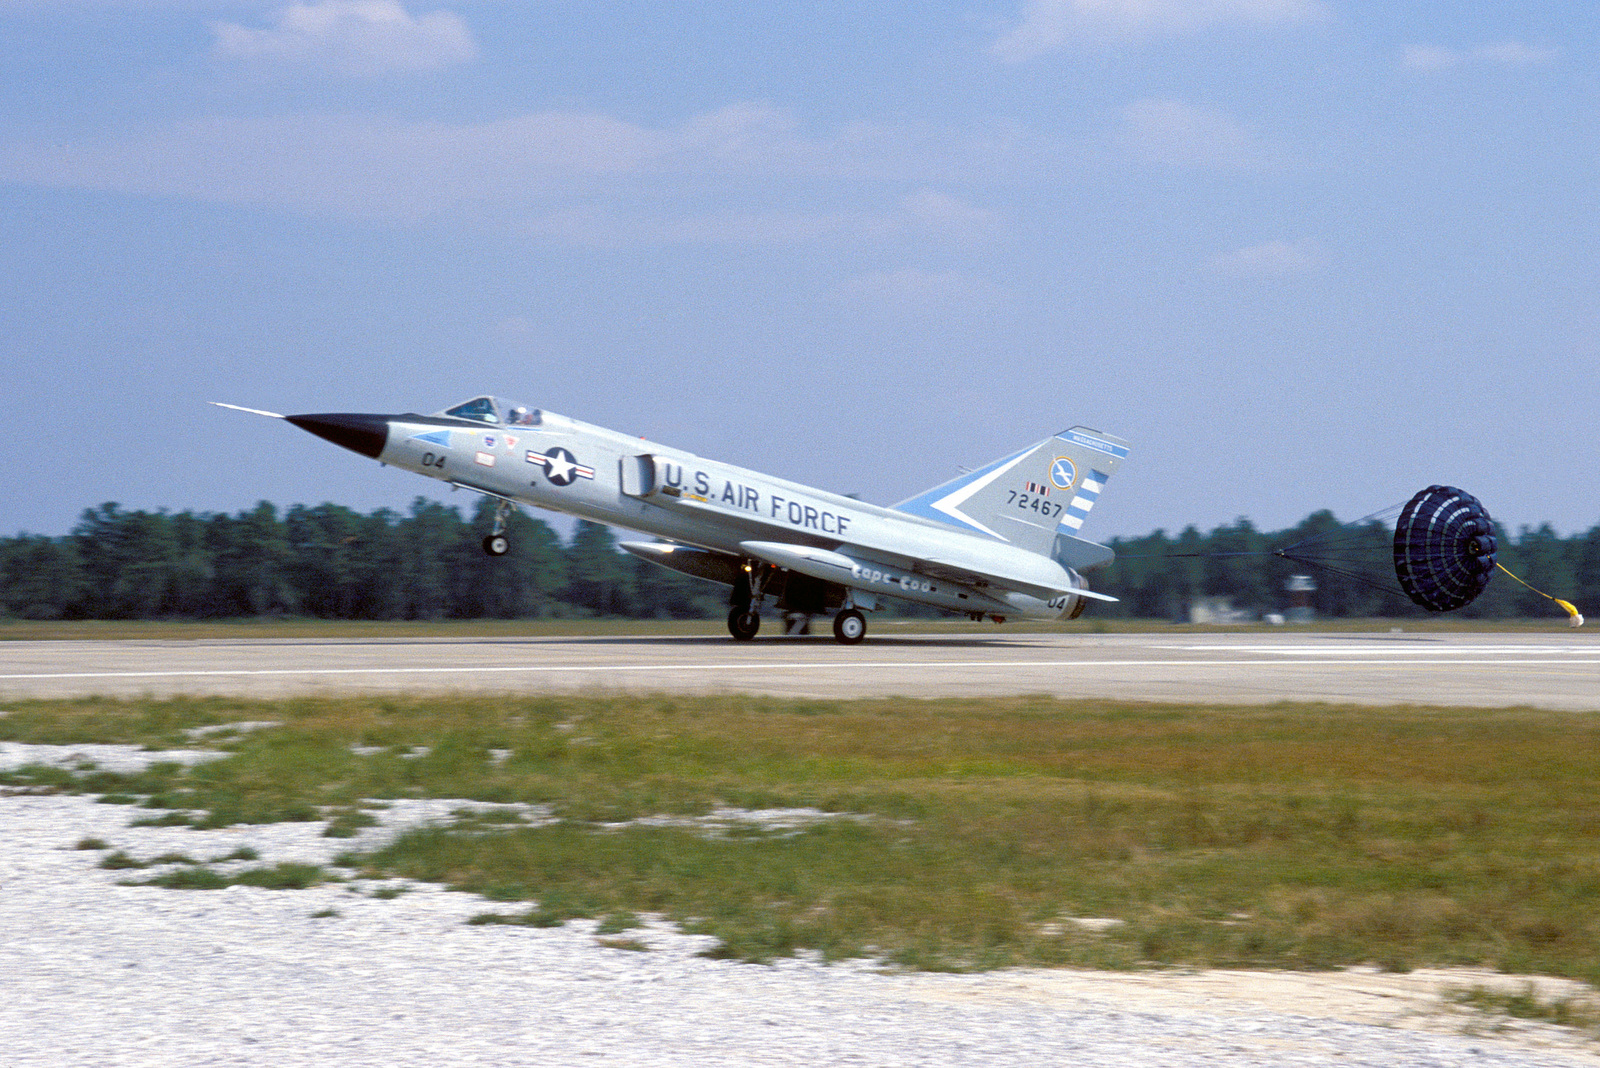 A Massachusetts Air National Guard F-106 Delta Dart aircraft from 102nd Fighter Interceptor Wing arrives at the base to compete in the air-to-air weapons meet WILLIAM TELL '84. A drag chute is deployed from the tail of the aircraft